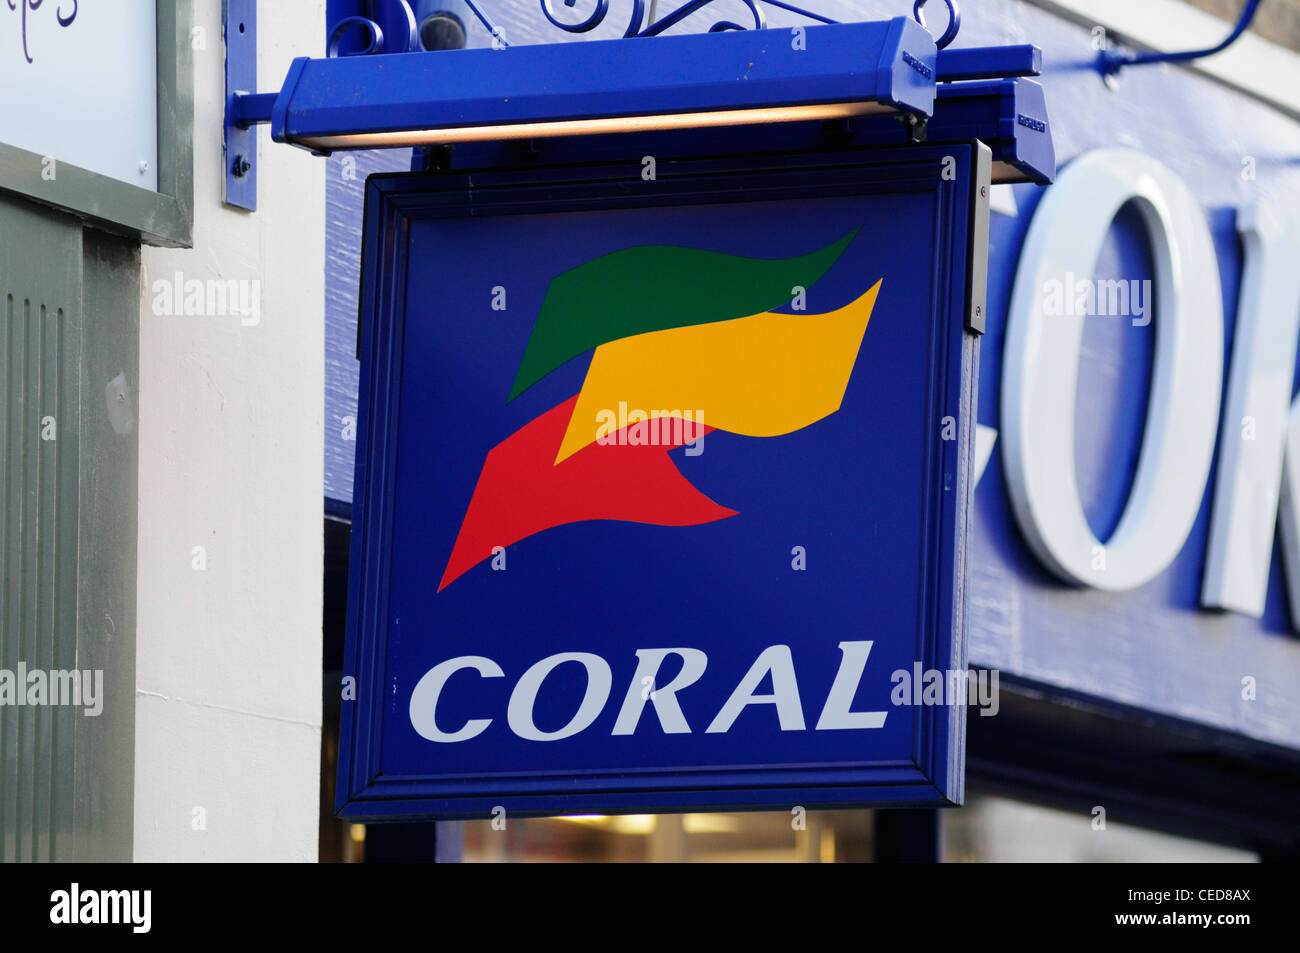 Coral telebetting how to understand odds in betting